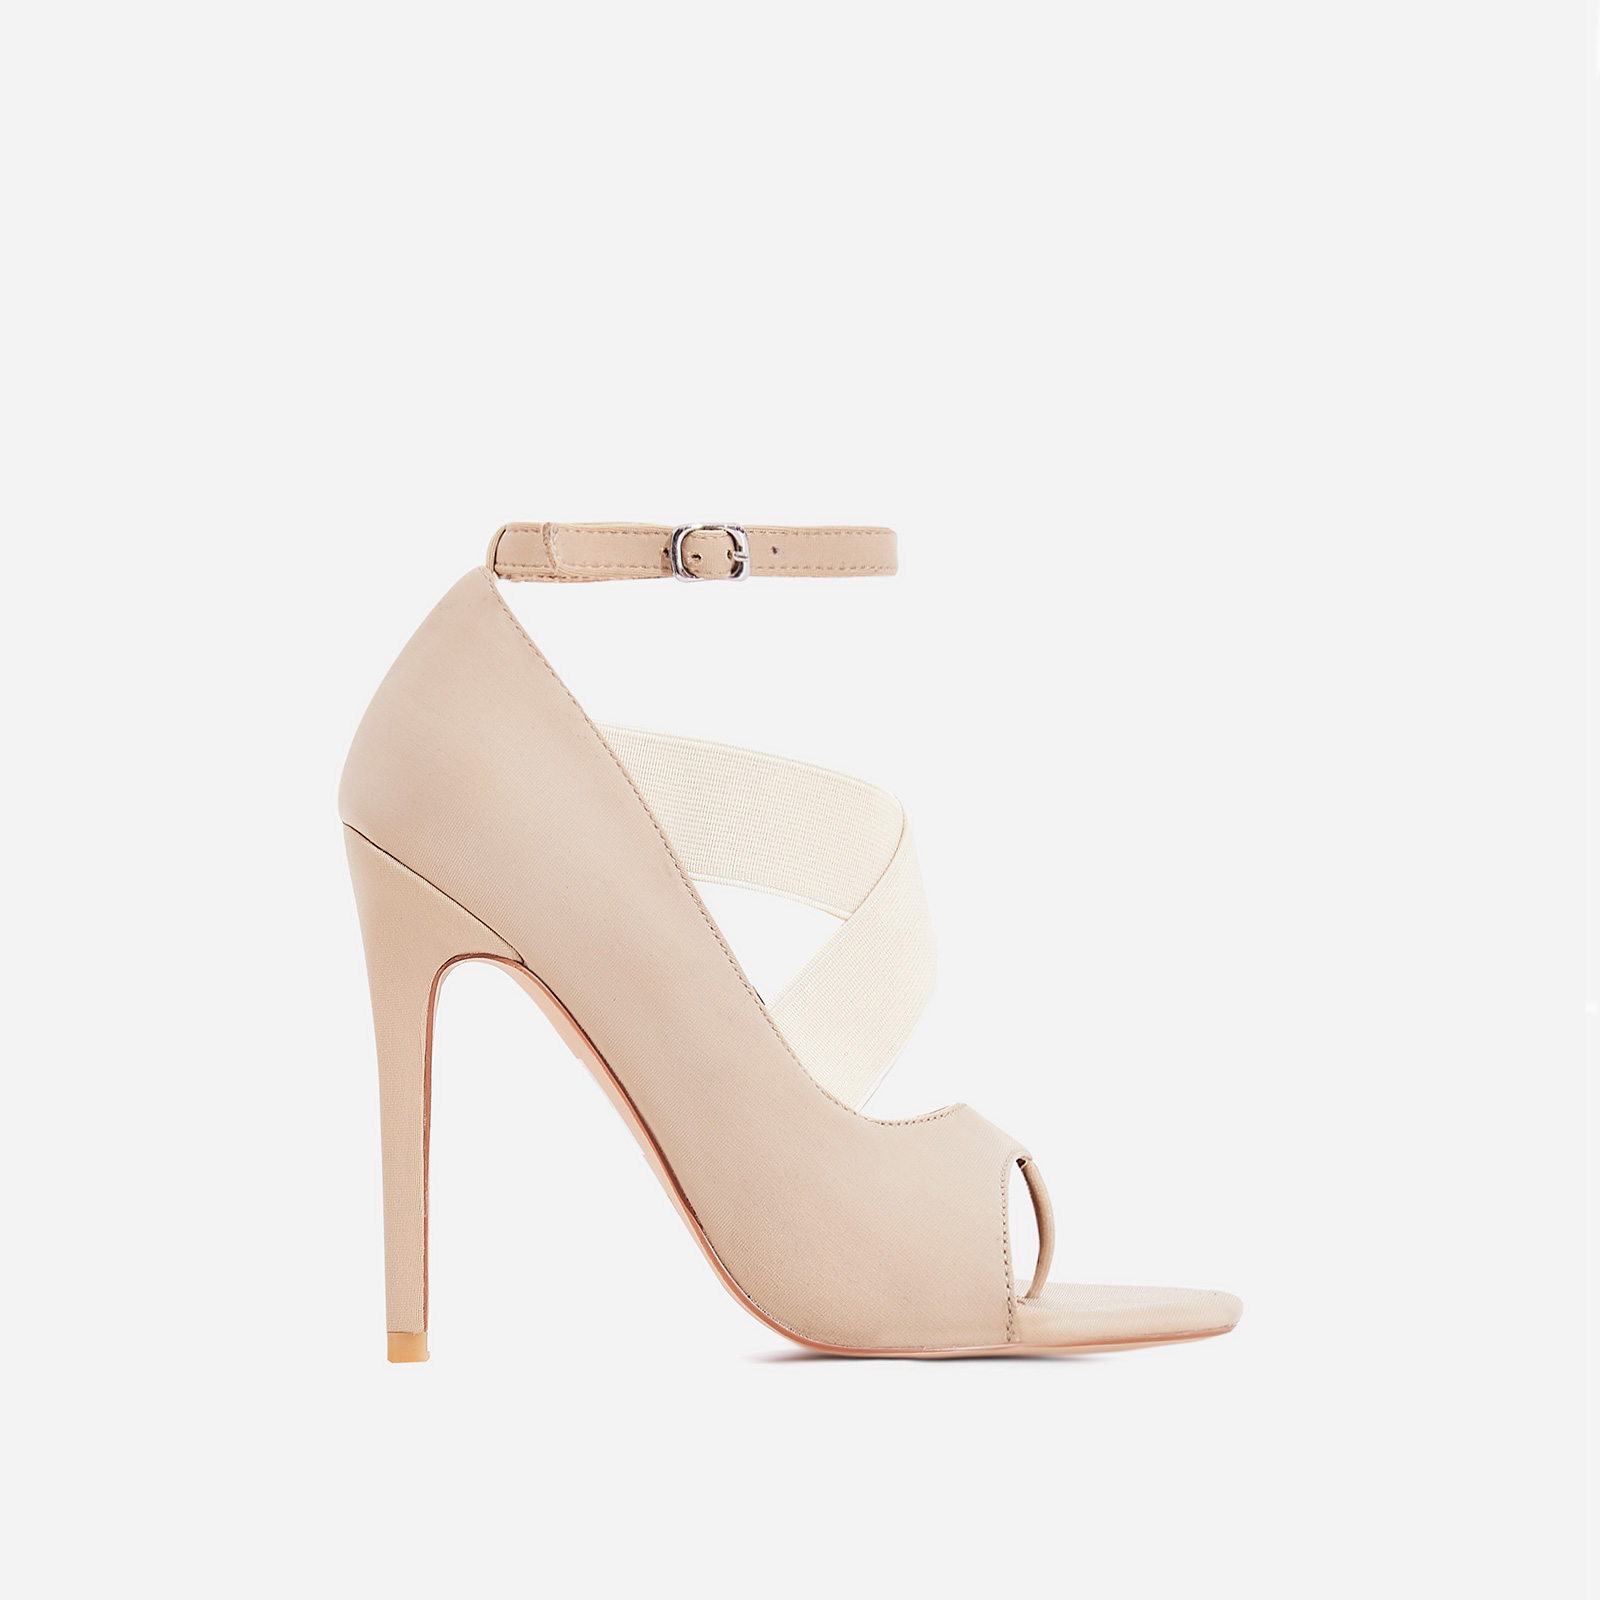 Yara Caged Elasticated Peep Toe Heel In Nude Lycra